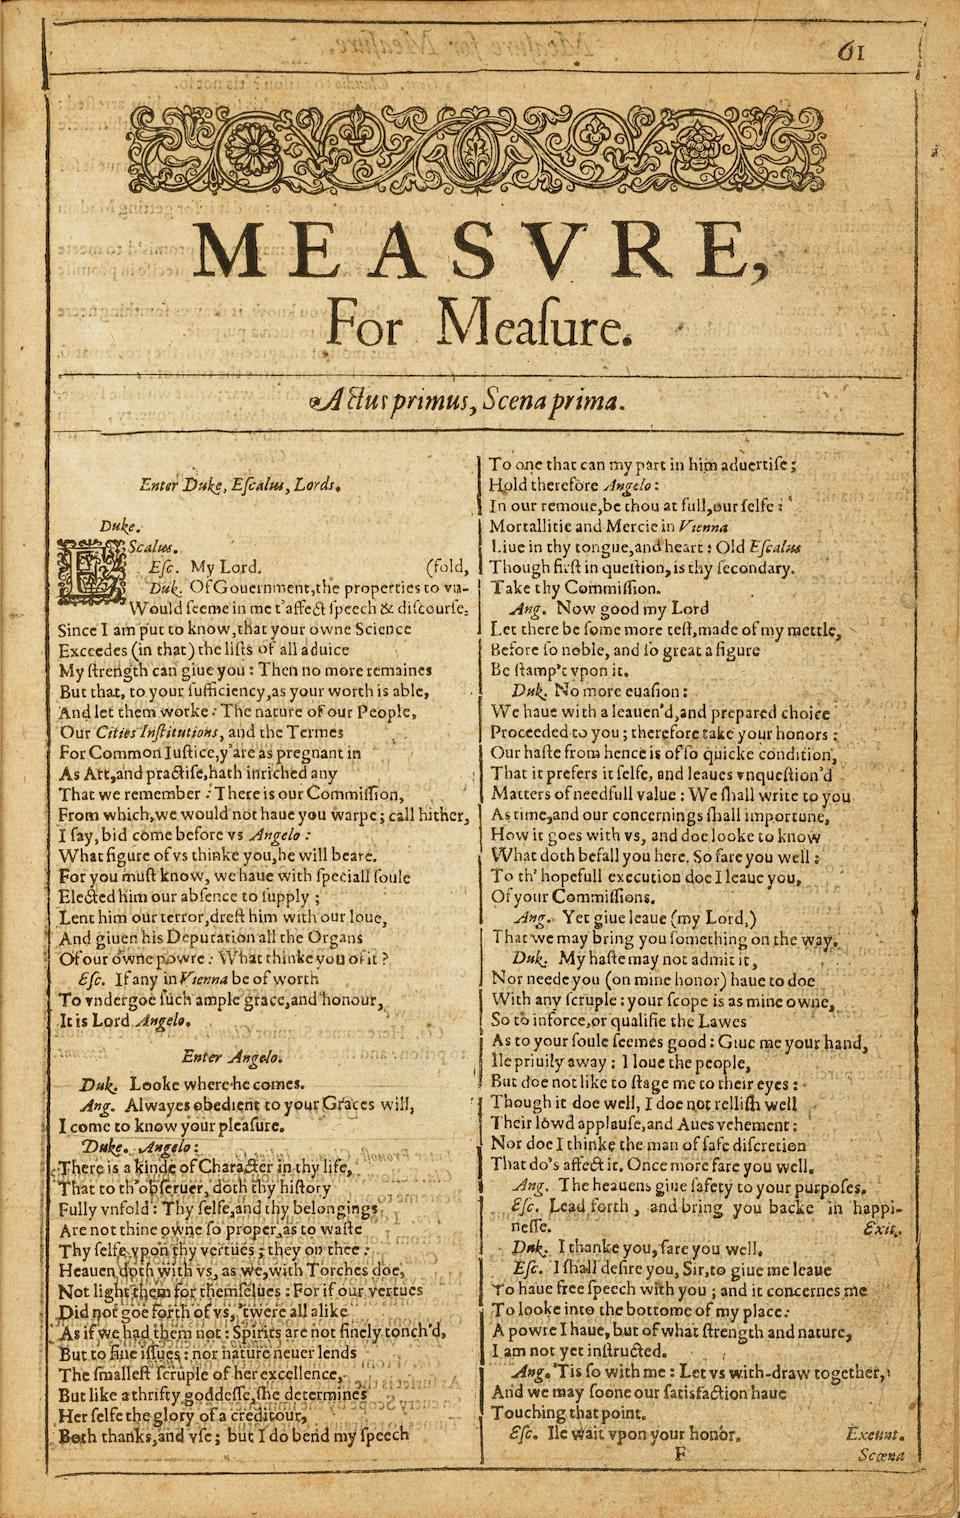 SHAKESPEARE, WILLIAM. 1564-1616. Measure, for Measure [Extracted from the First Folio]. [London: Isaac Jaggard..., 1623.]